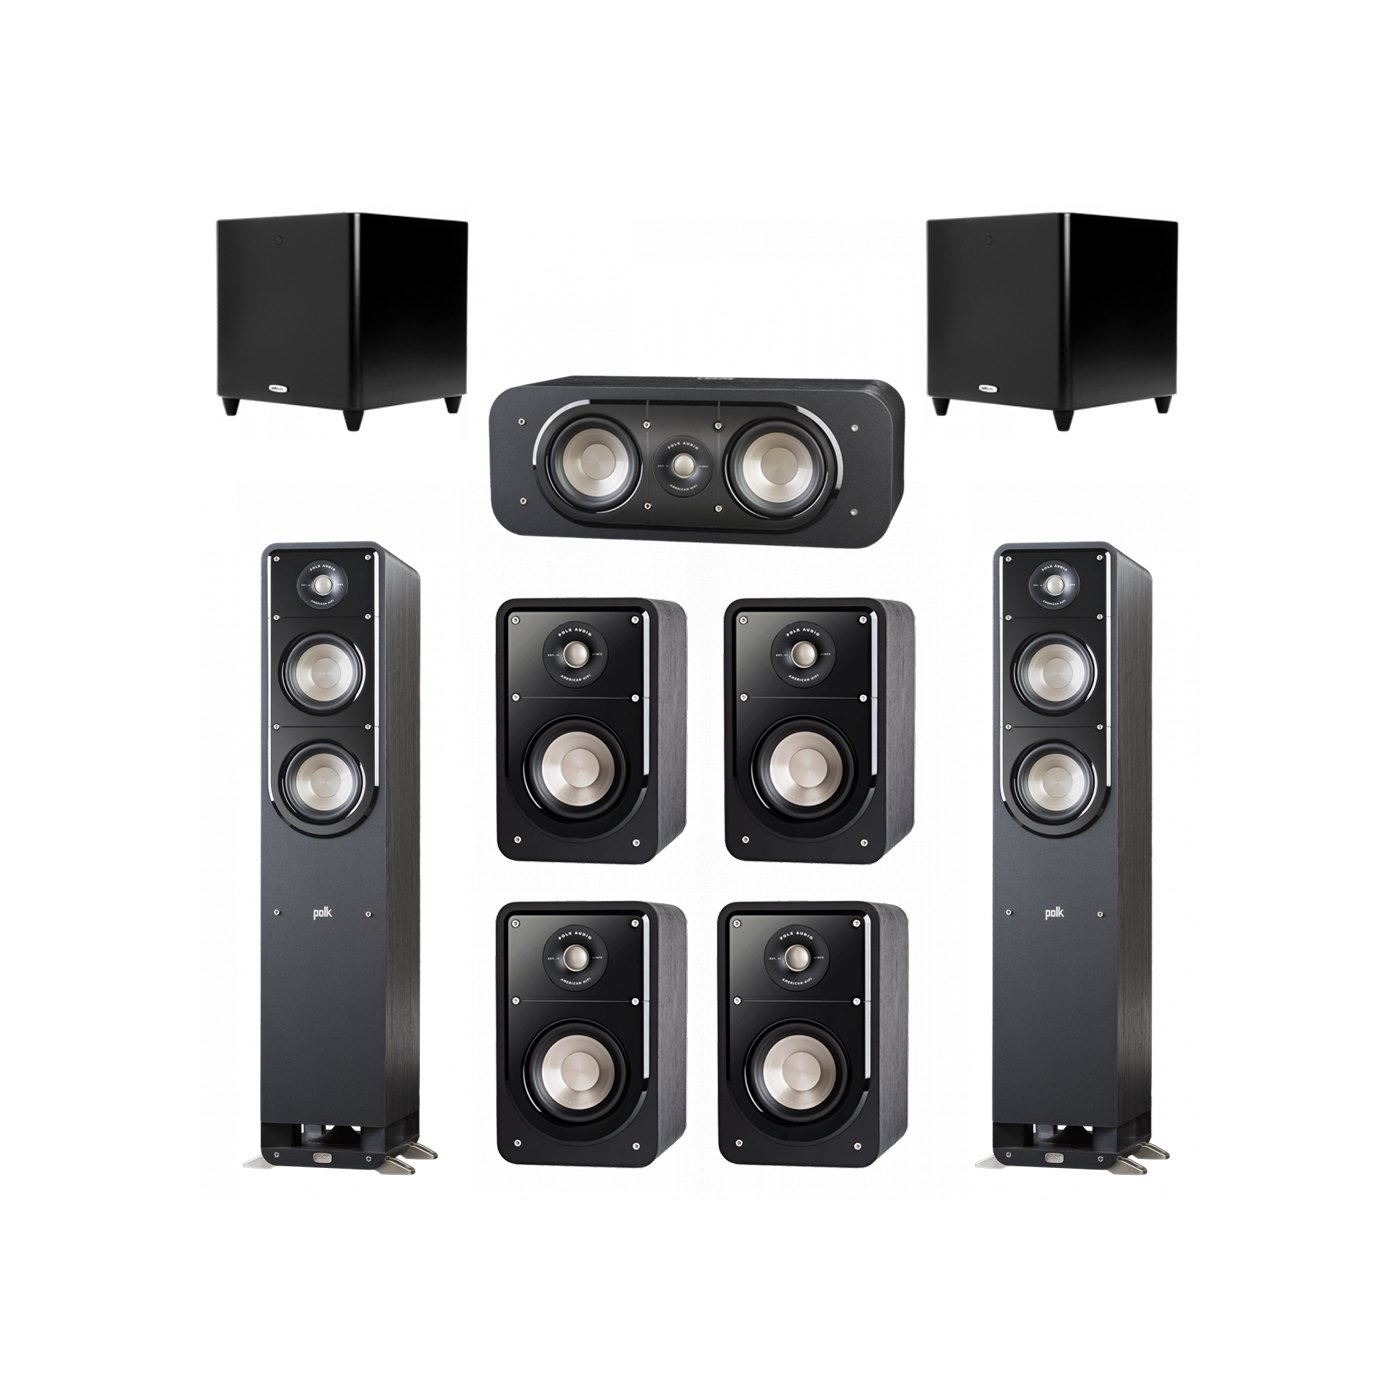 Polk Audio Signature 7.2 System with 2 S50 Tower Speaker, 1 Polk S30 Center Speaker, 4 Polk S15 Bookshelf Speaker, 2 Polk DSW PRO 660 wi Subwoofer